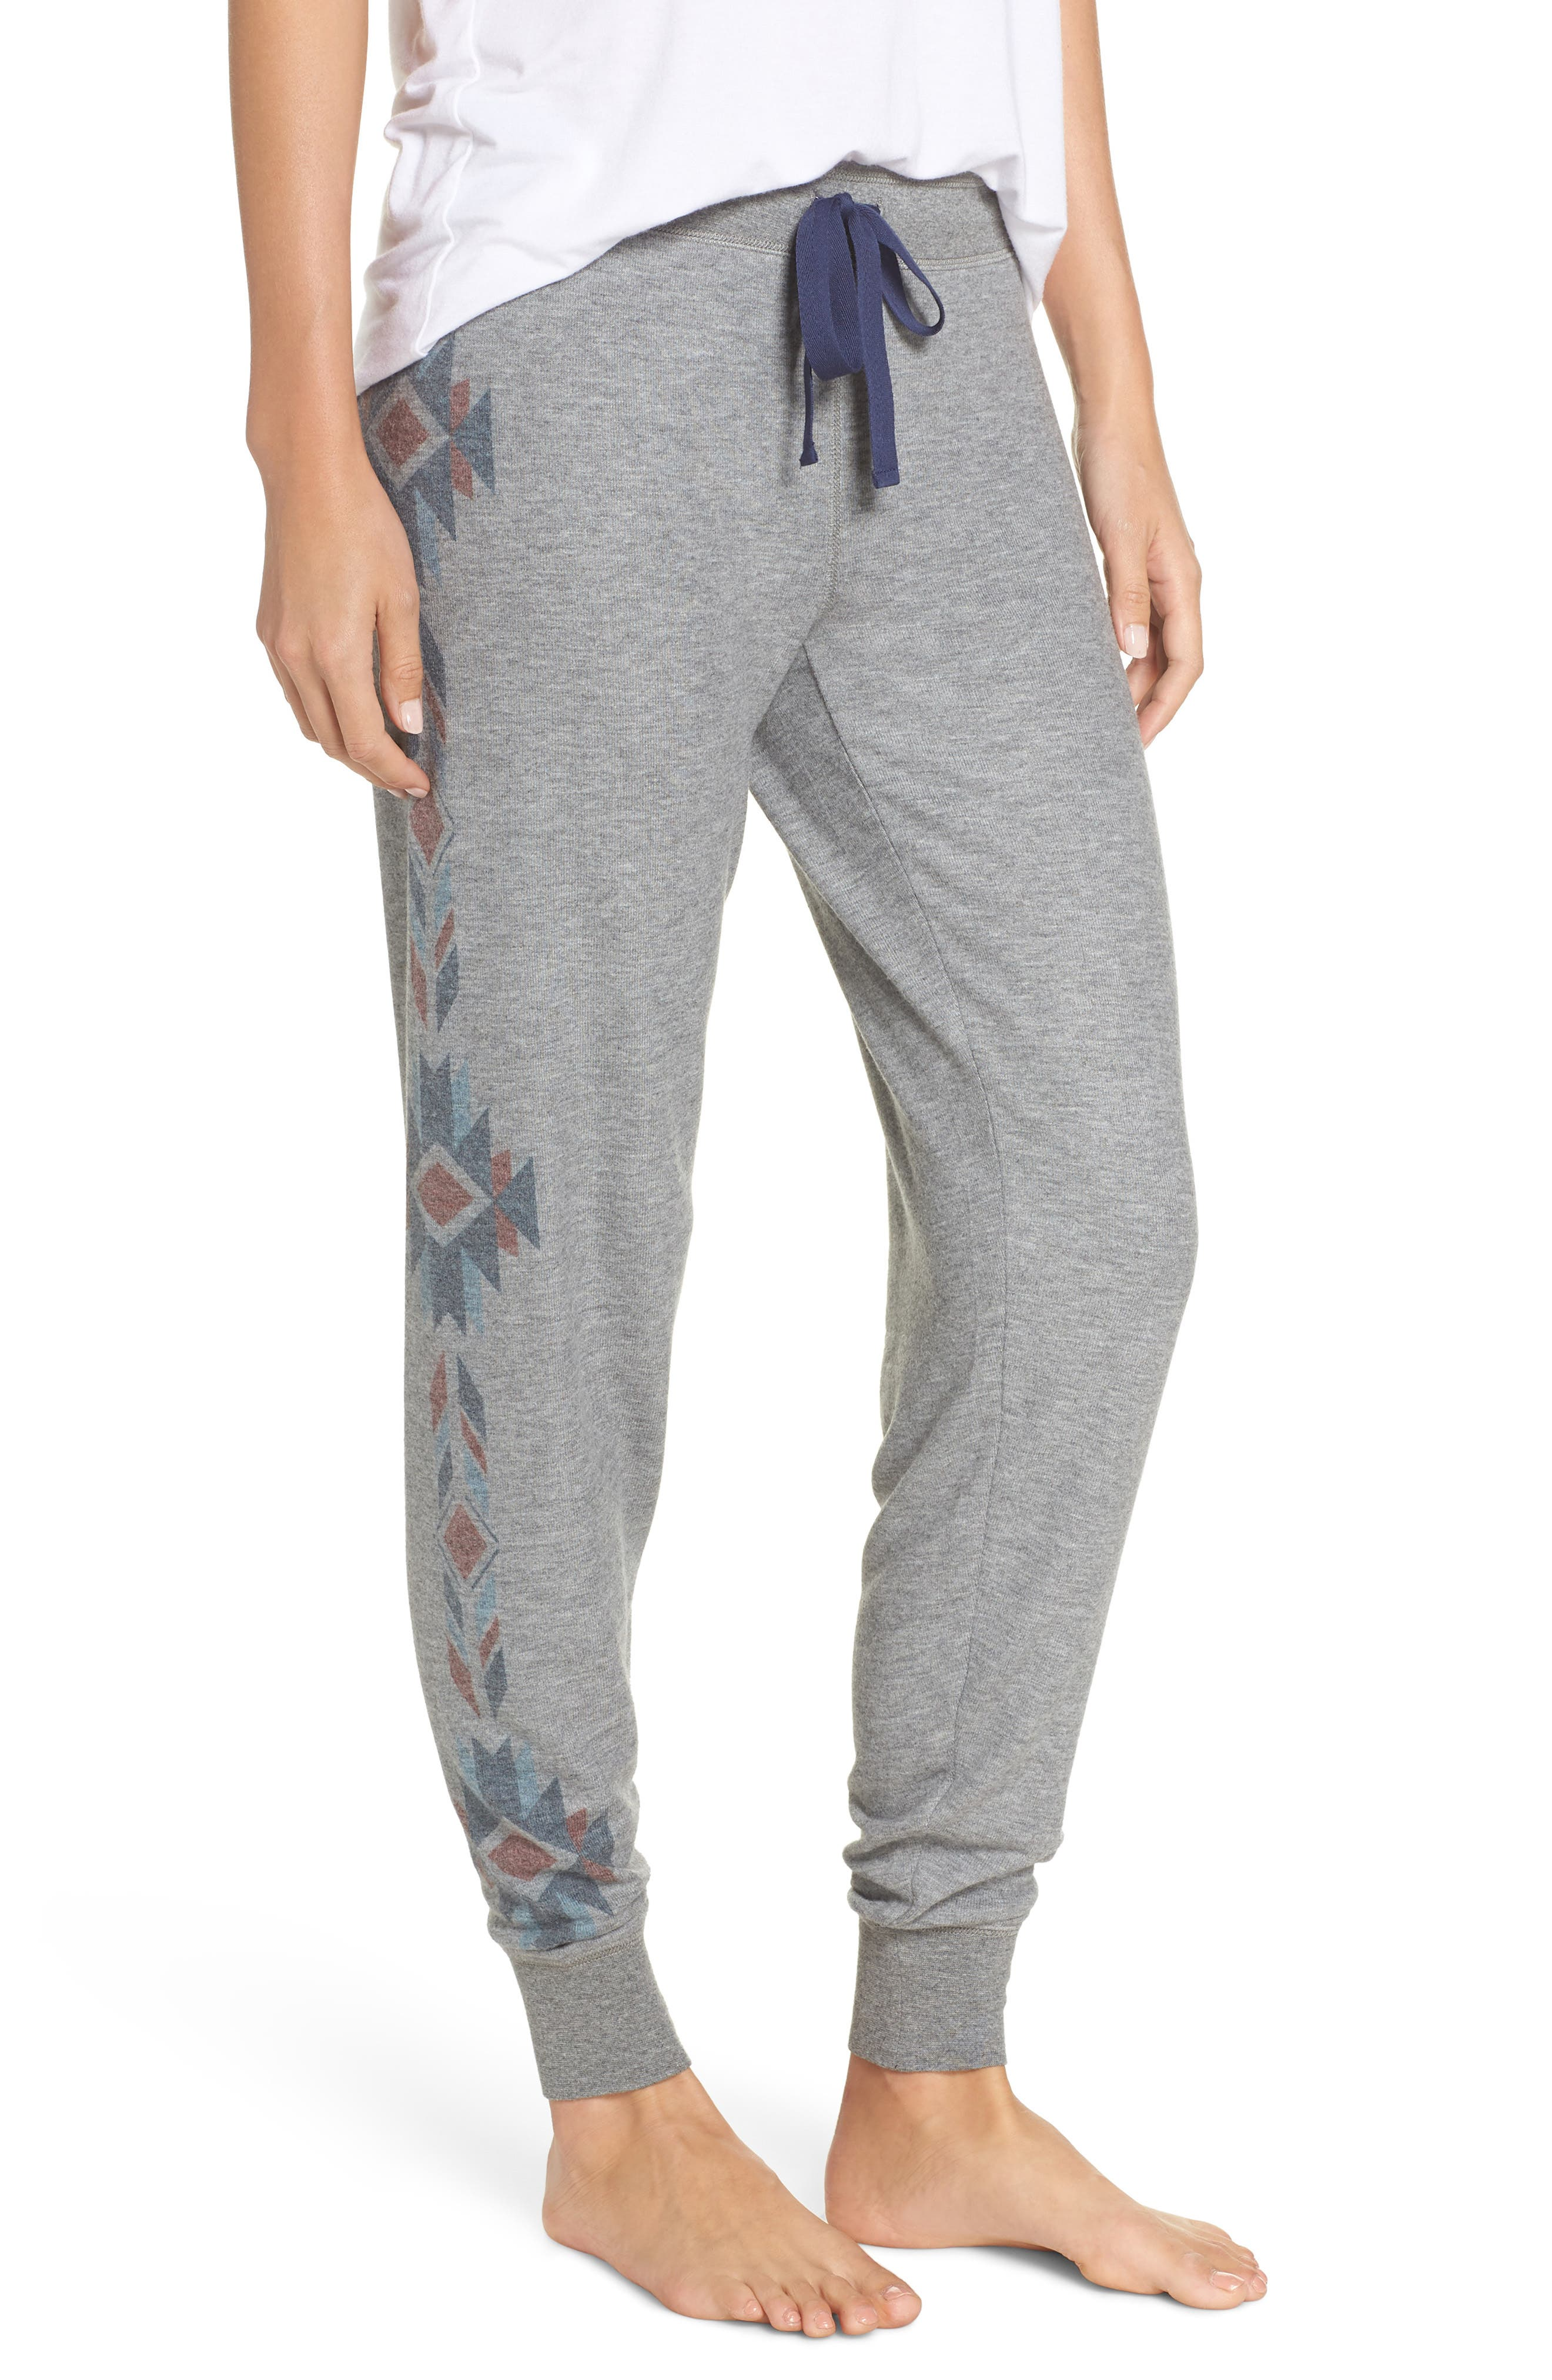 Winter Escape Jogger Pants,                         Main,                         color, H GREY